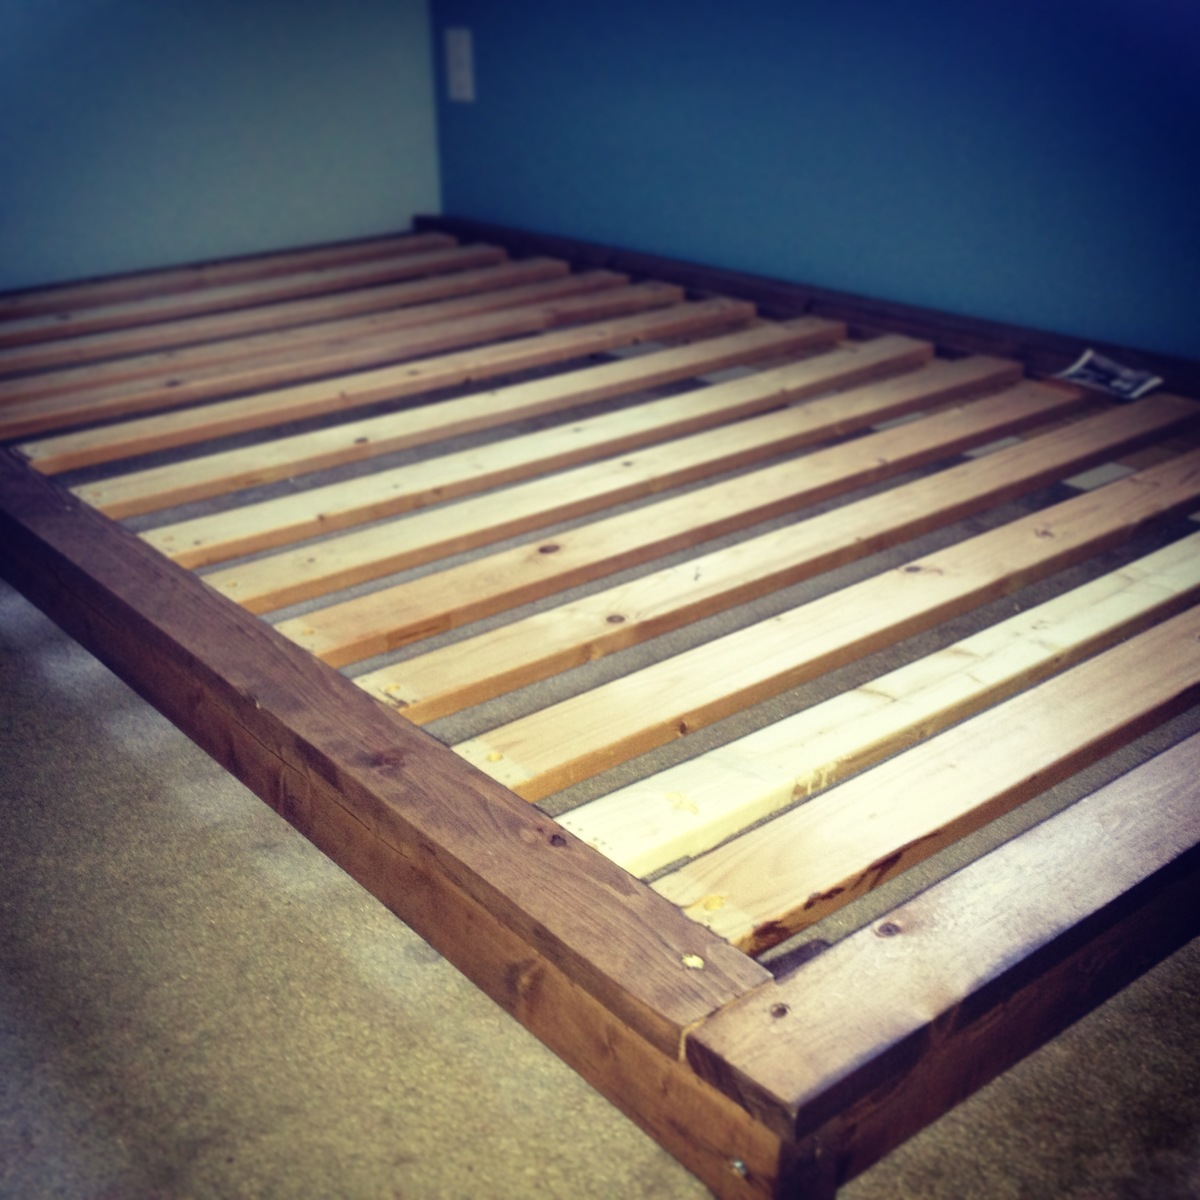 Platform bed for my toddler